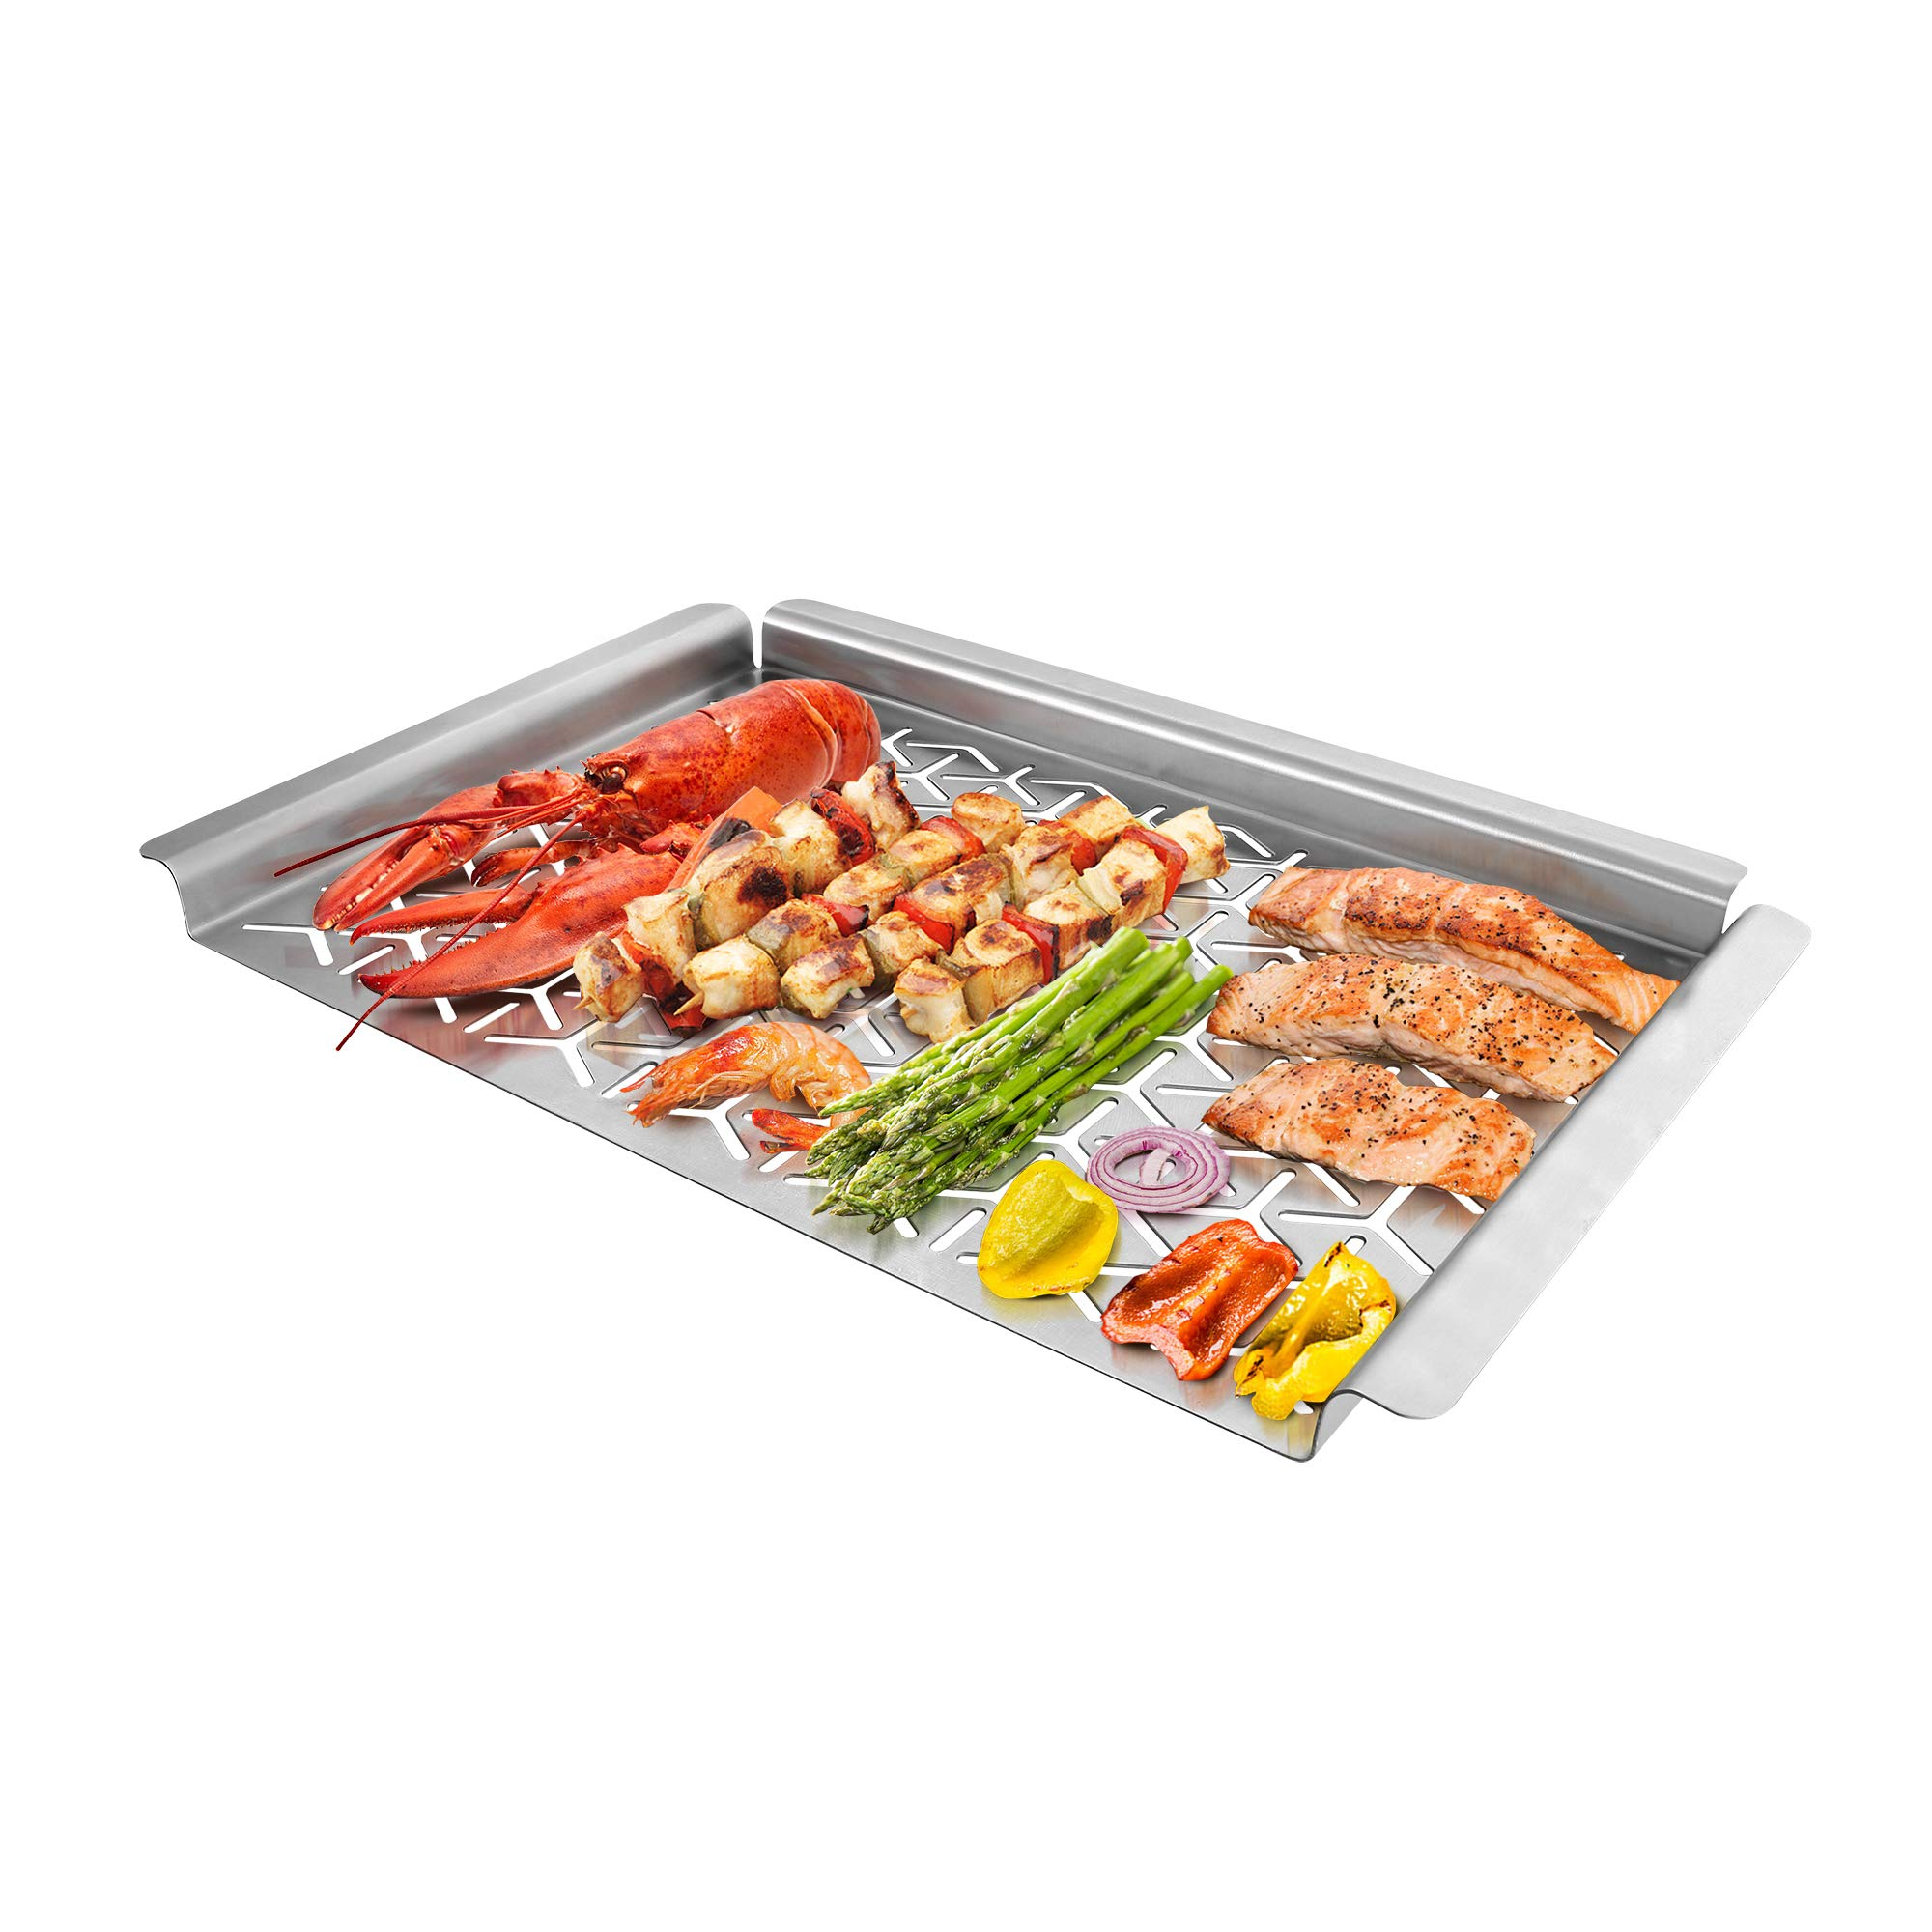 UNICOOK BBQ Grill Topper, Warp-Free Stainless Steel Grilling Pan, Heavy Duty Grill Basket, Perfect Cooking Tray for Delicate Items Like Vegetable Seafood and Fruit, Rectangular 16x11inch by UNICOOK